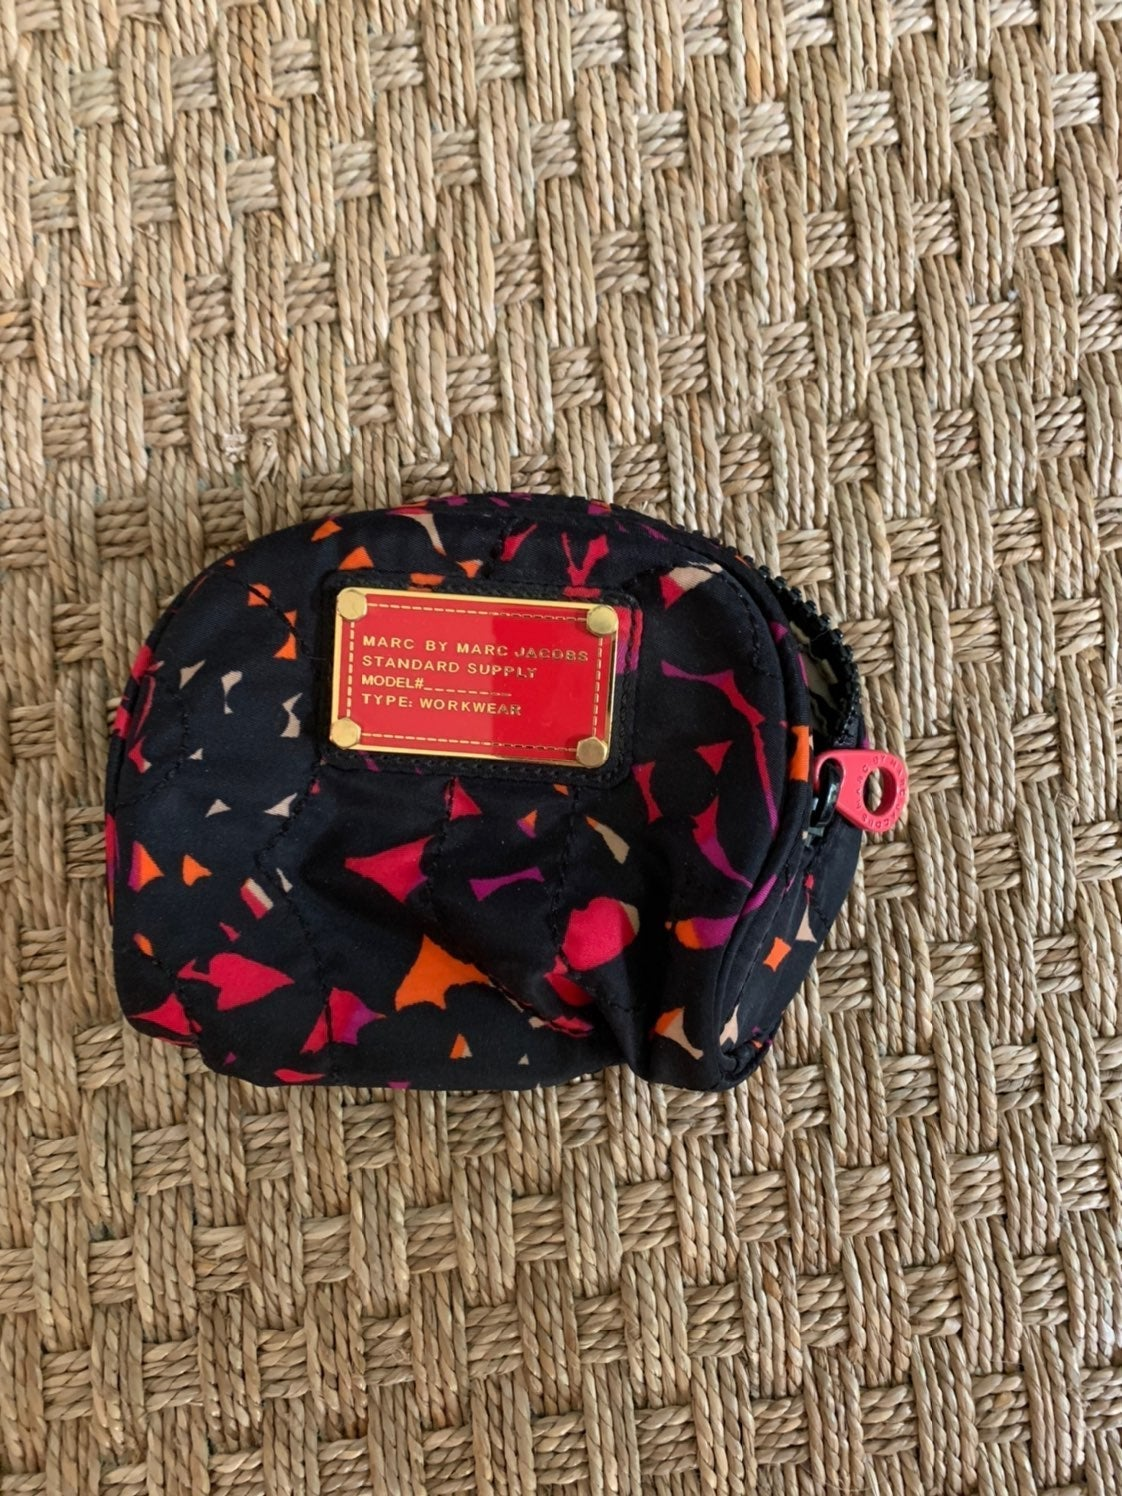 MARC JACOBS small bag / pouch